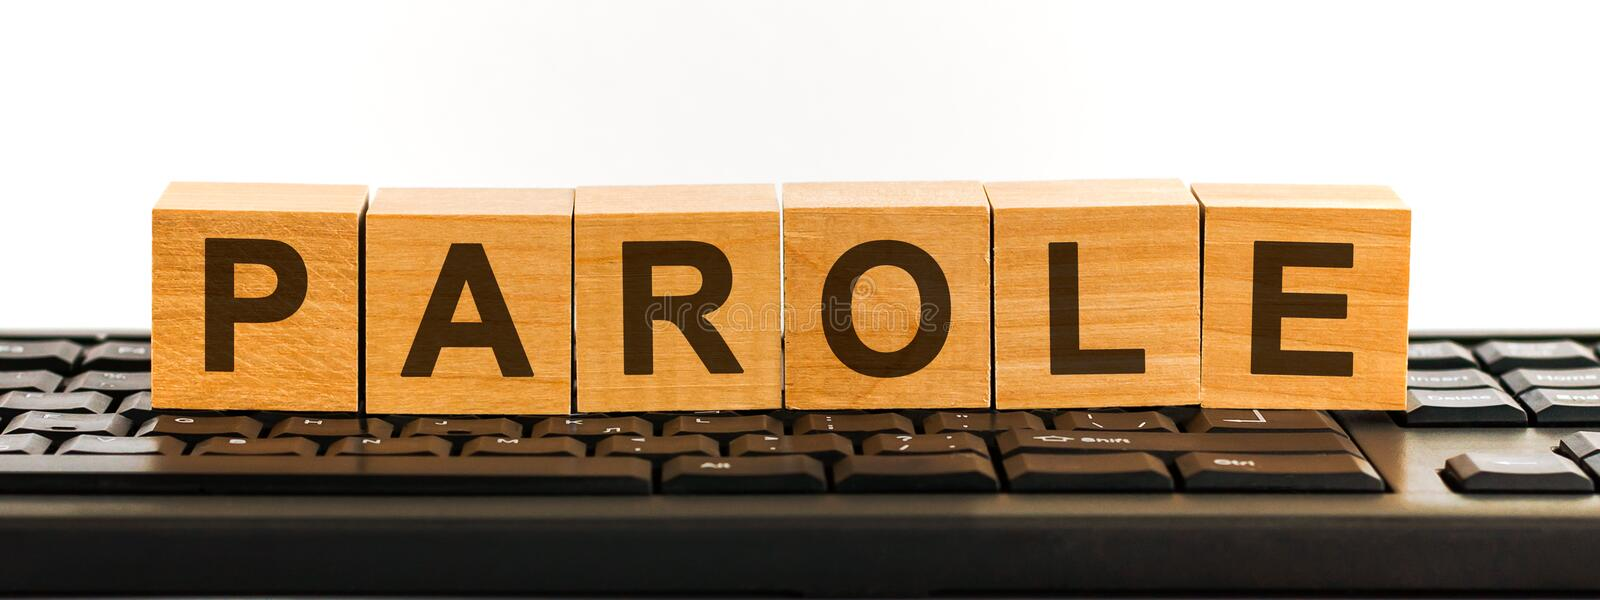 PAROLE word made with building blocks. A row of wooden cubes with a word written in black font is located on a black keyboard.  royalty free stock image